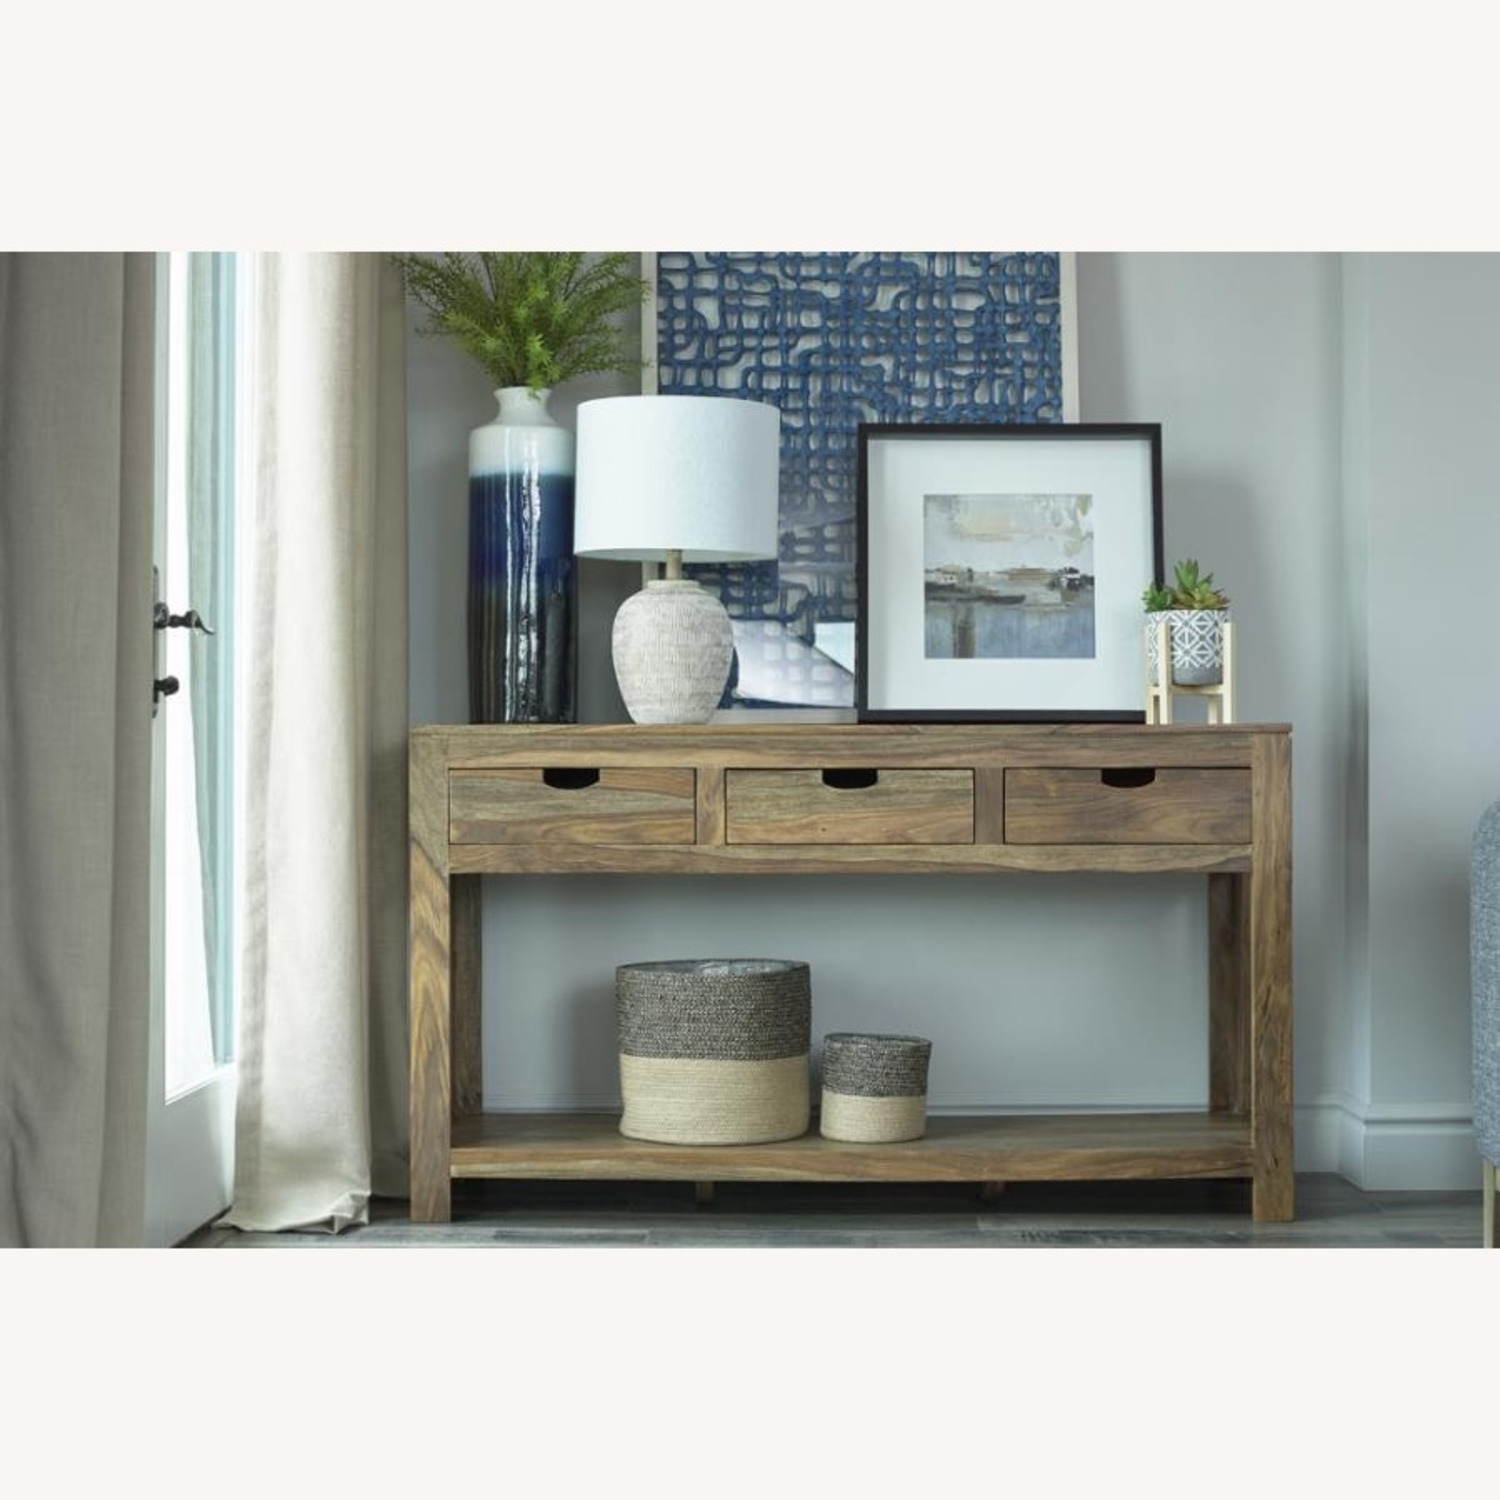 Console Table In Sheesham Grey Finish W/ 3 Drawers - image-1